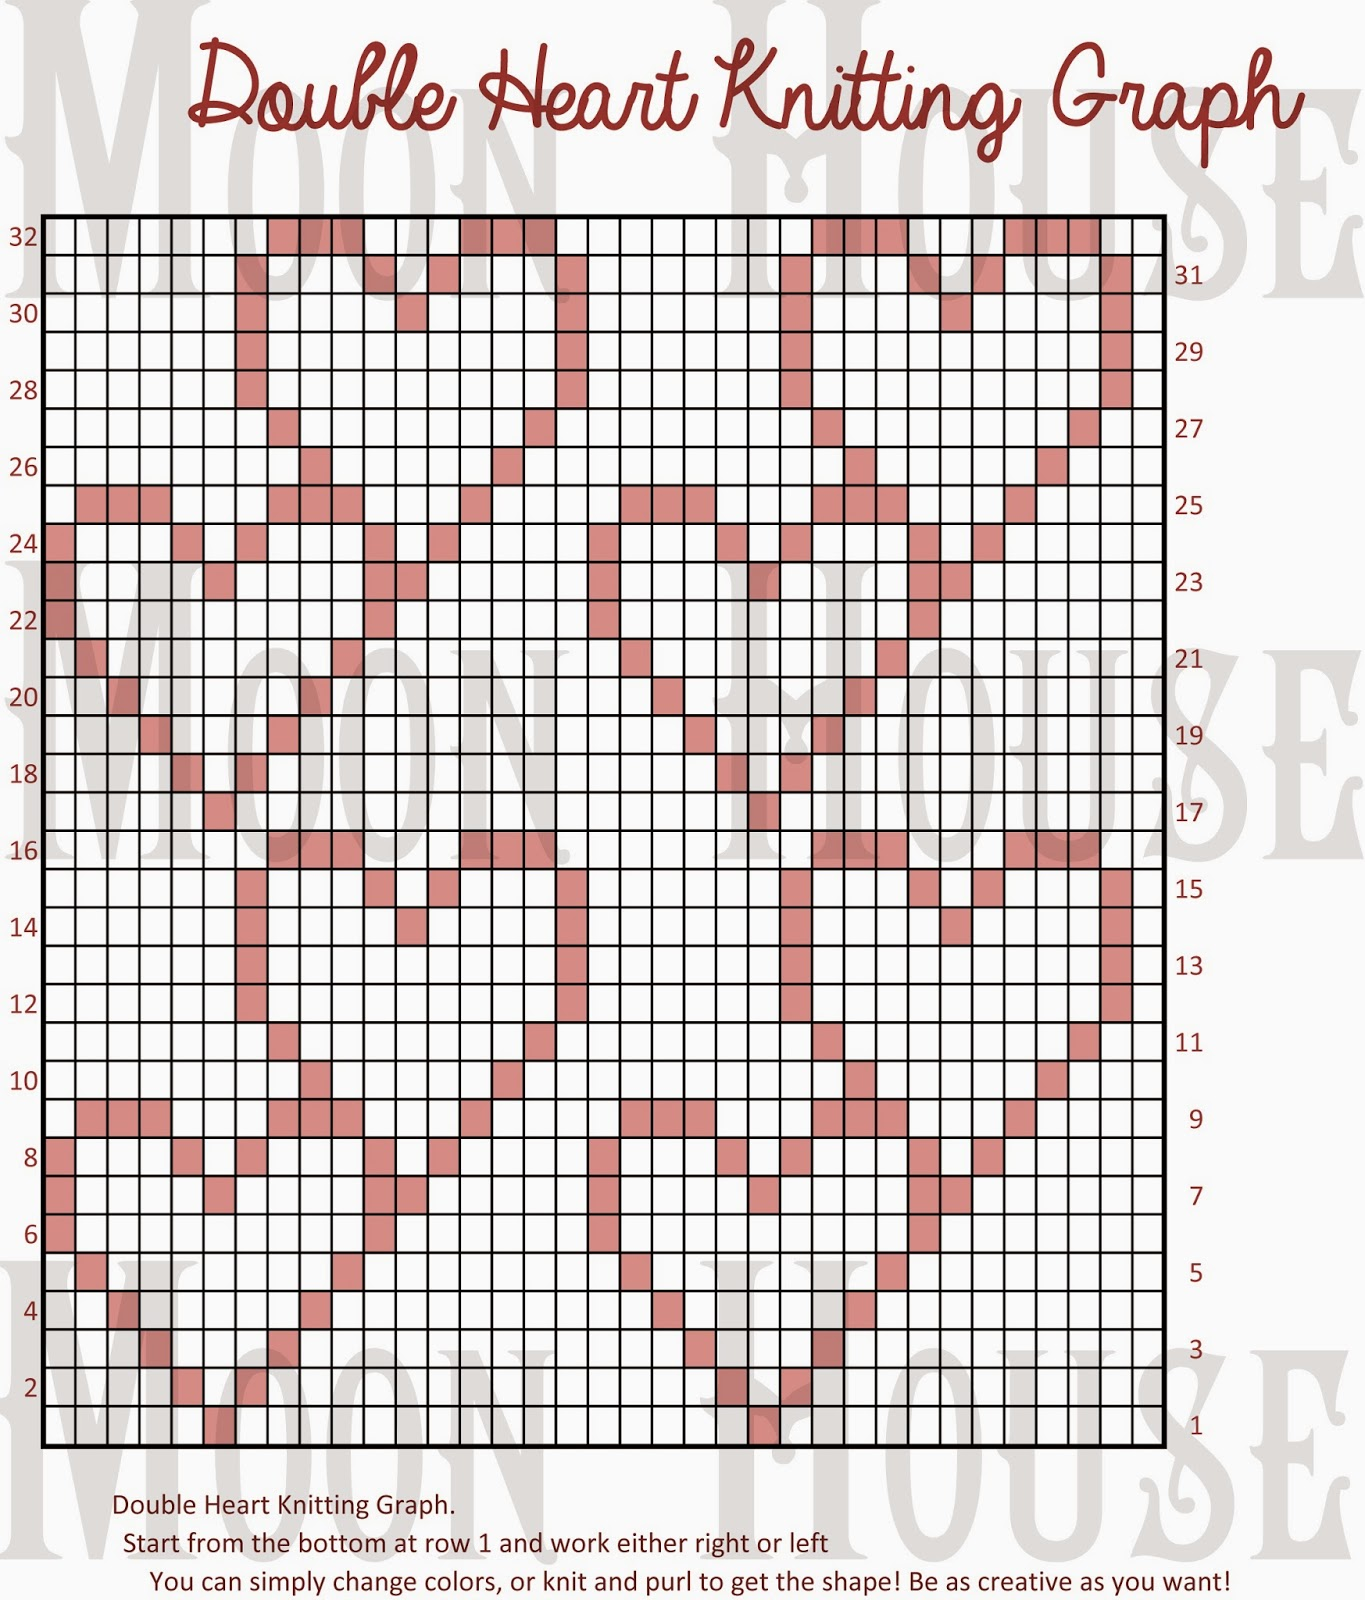 Moon House: Double Heart Knitting Graph